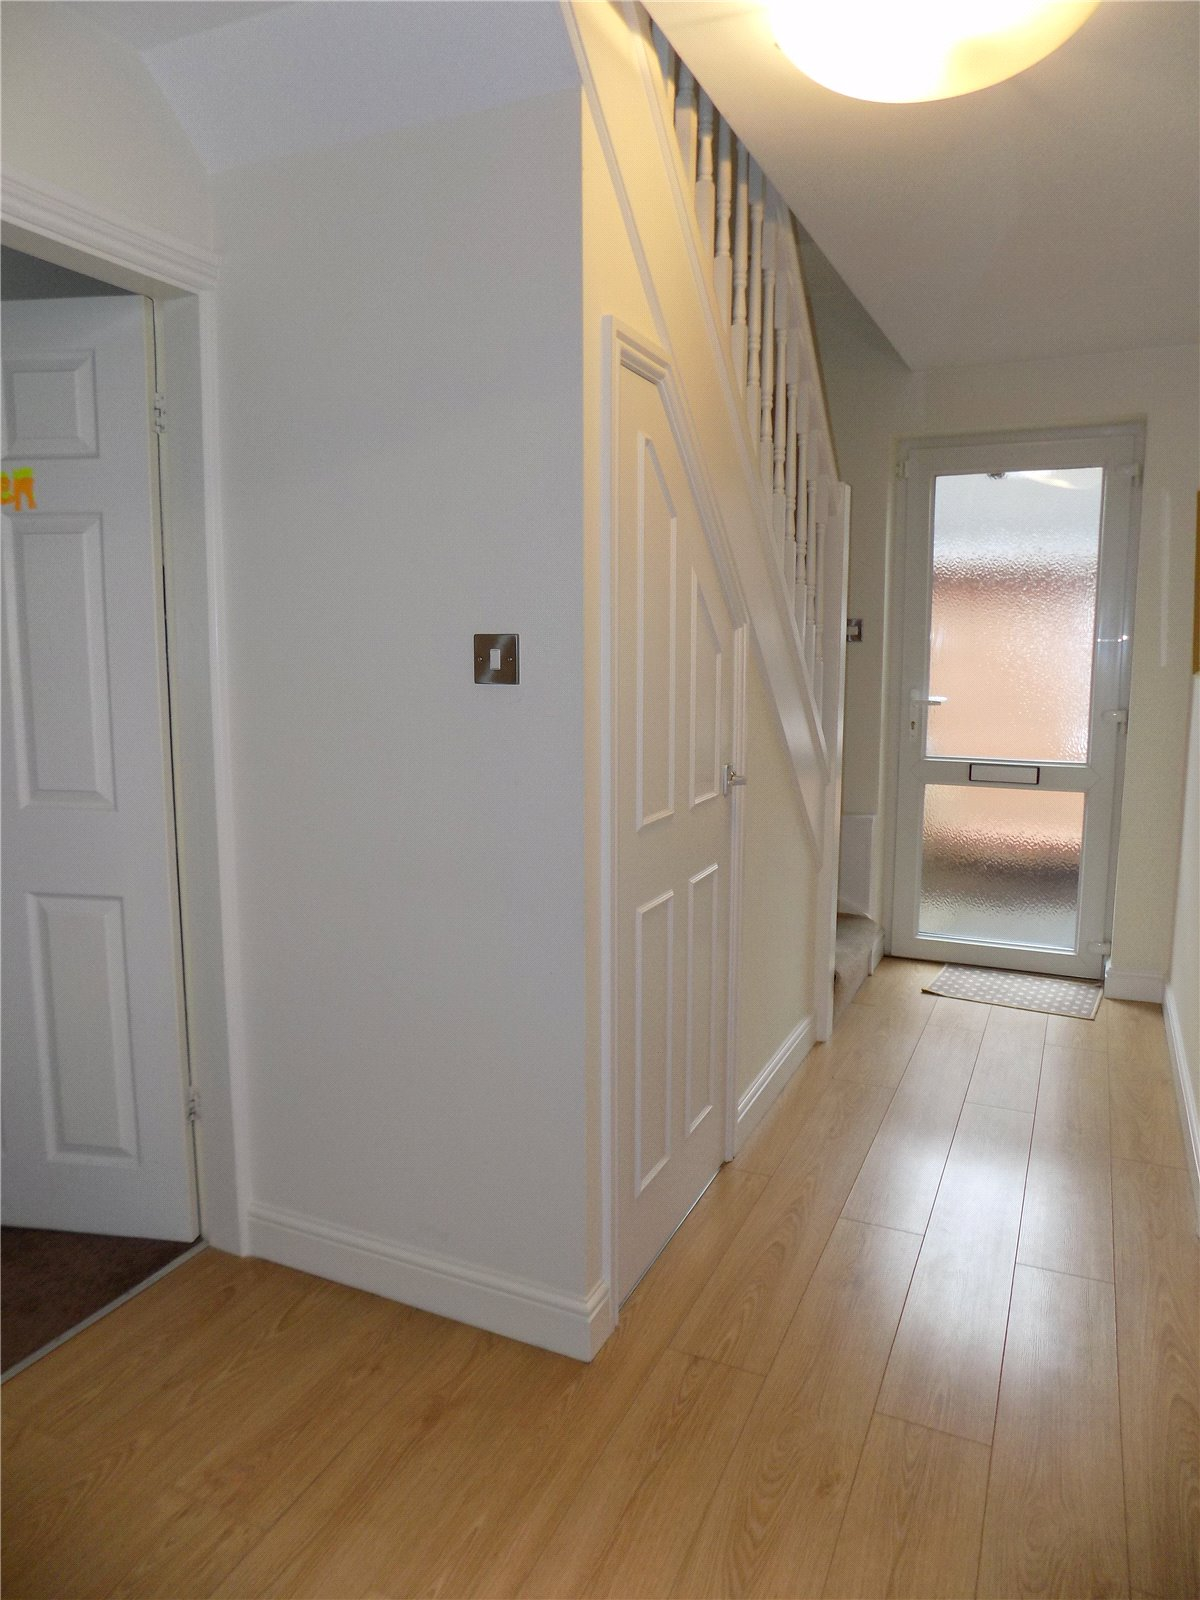 Whitegates Heanor 4 Bedroom House For Sale In Old Coppice